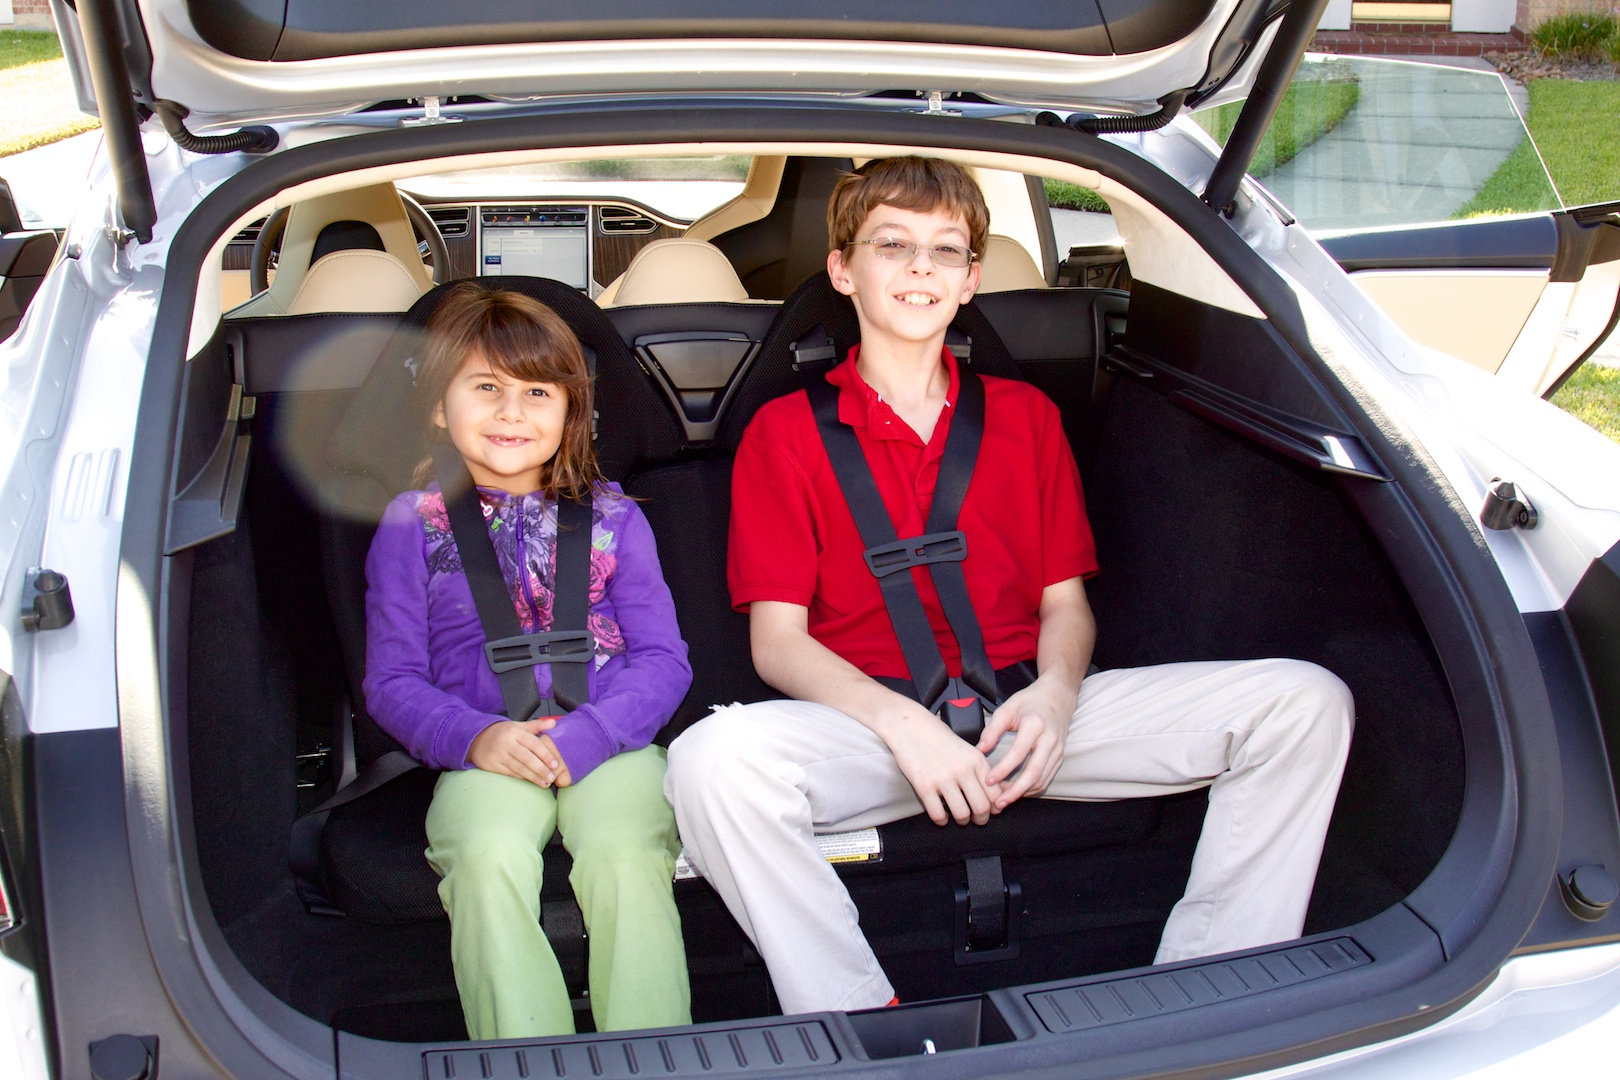 Our rear-facing jump seat testers approved wholeheartedly of both the car and the seating position.